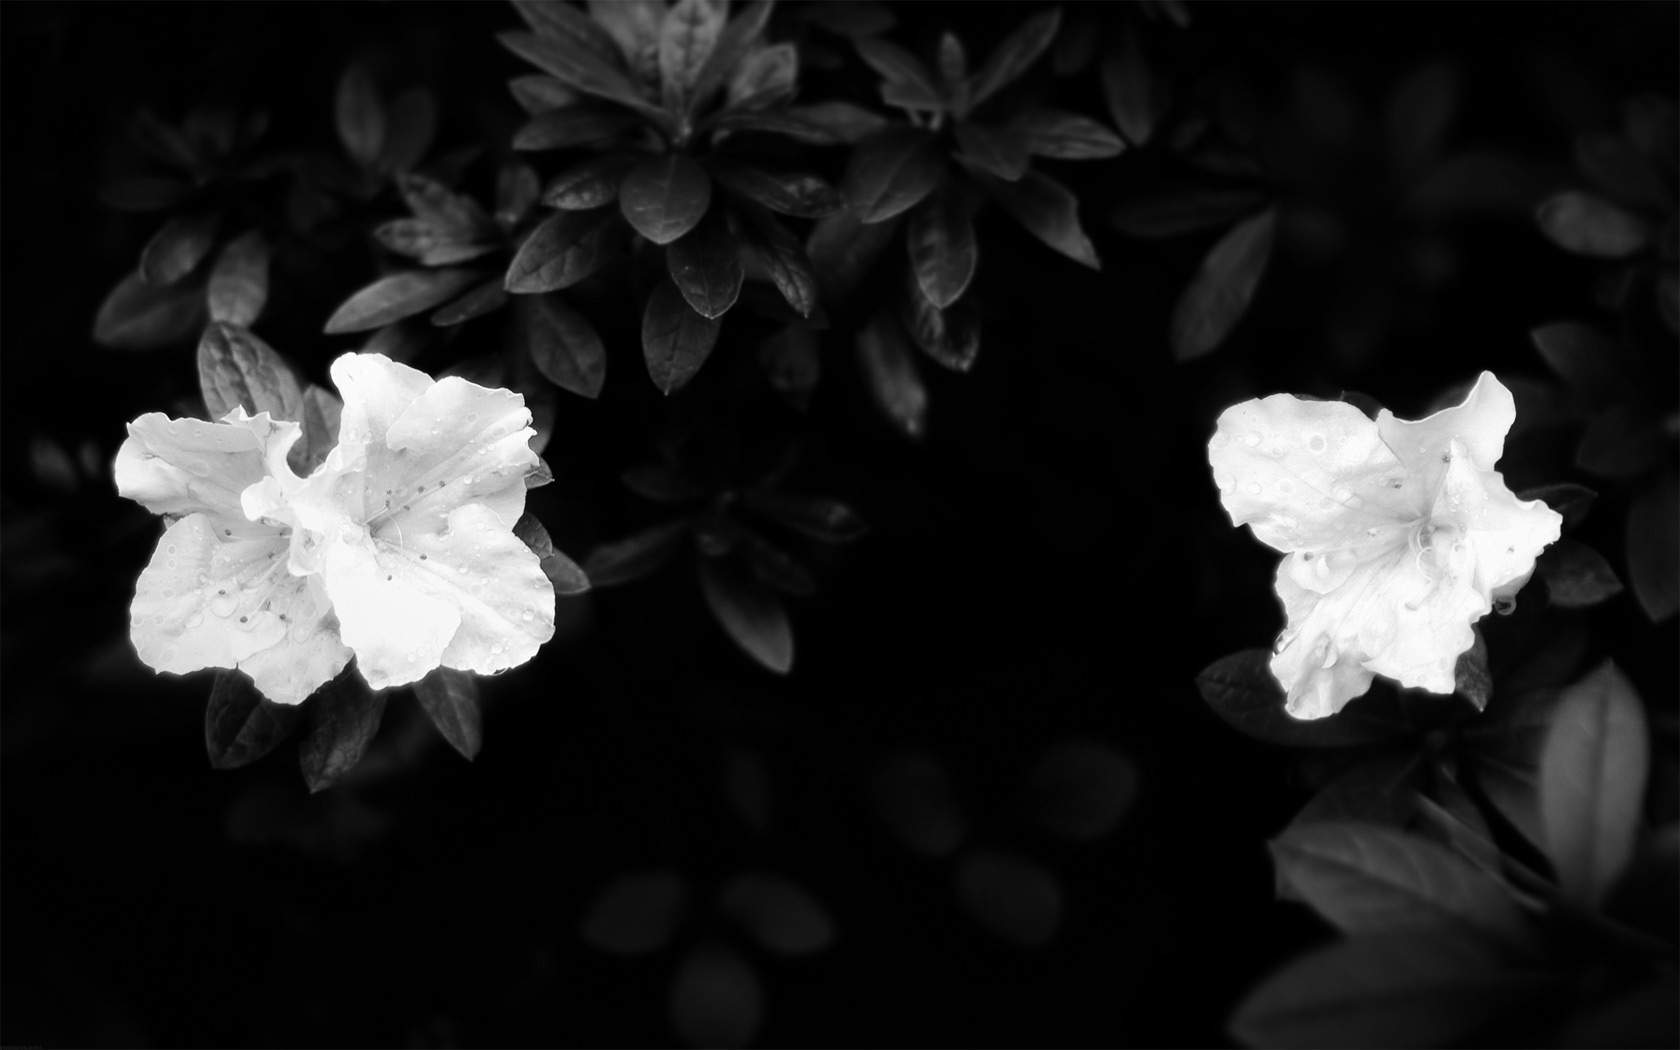 to wear - White and black floral desktop wallpaper video